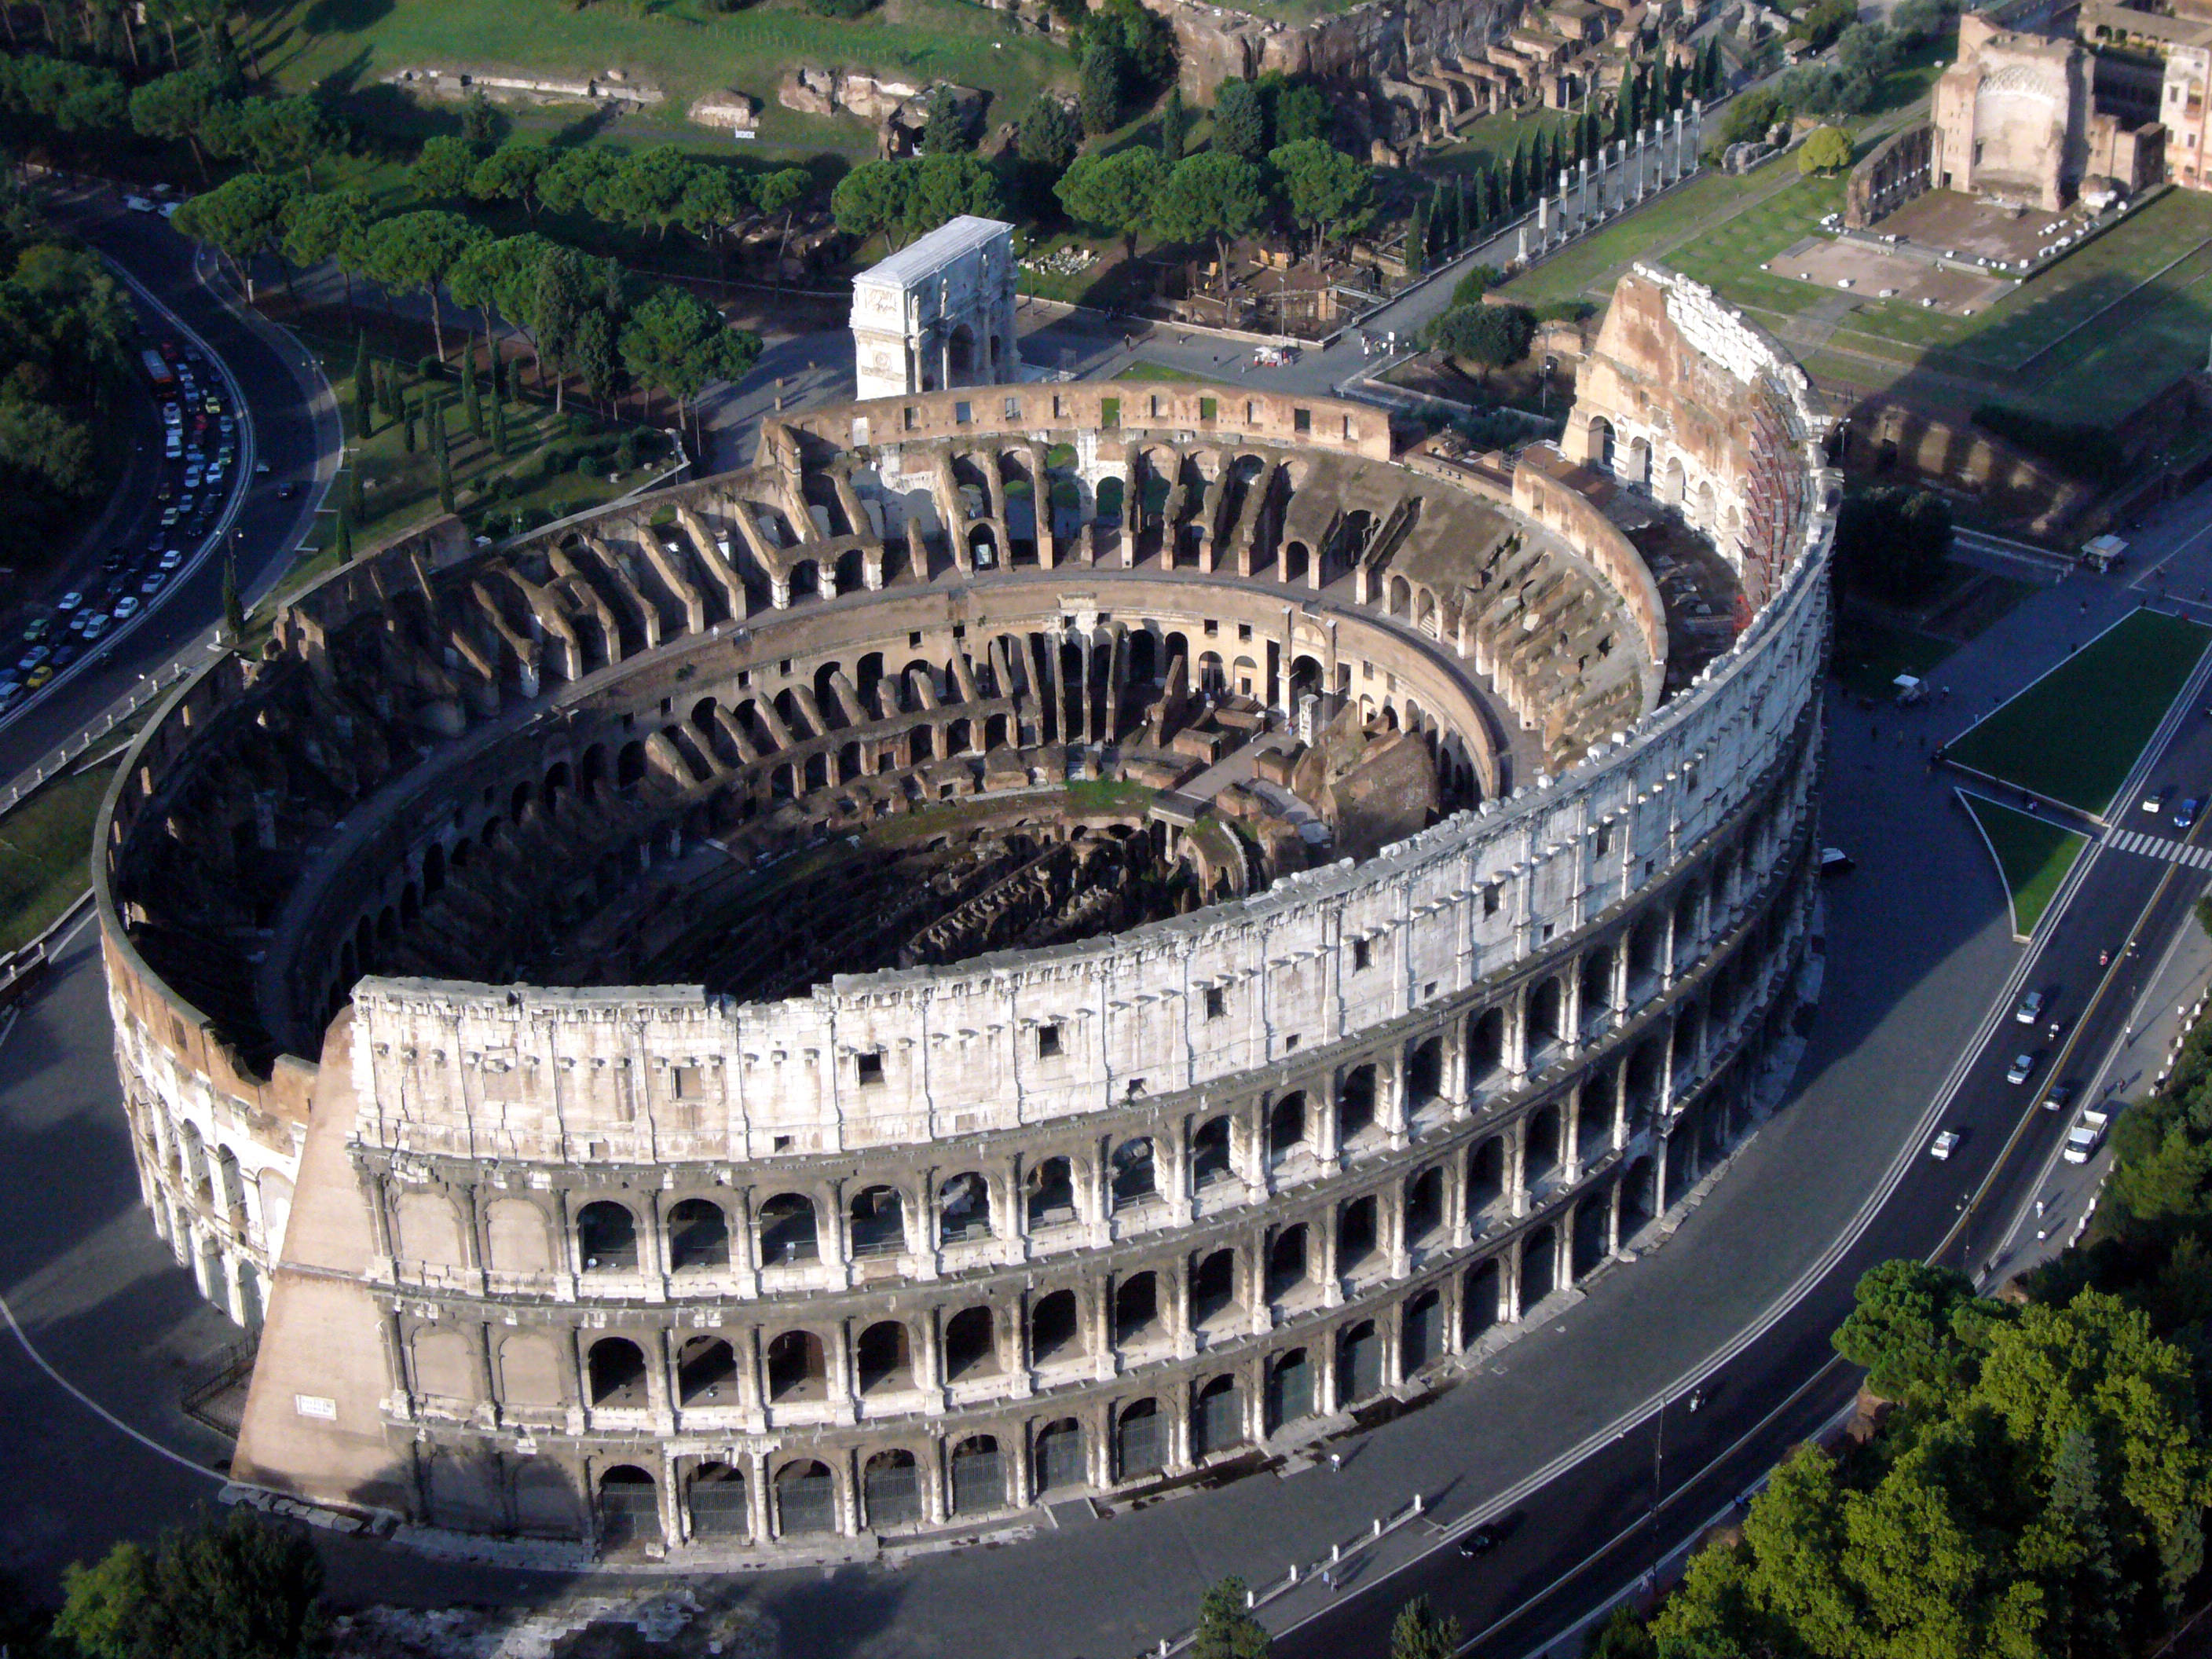 Colosseum Rome Italy Aerial View